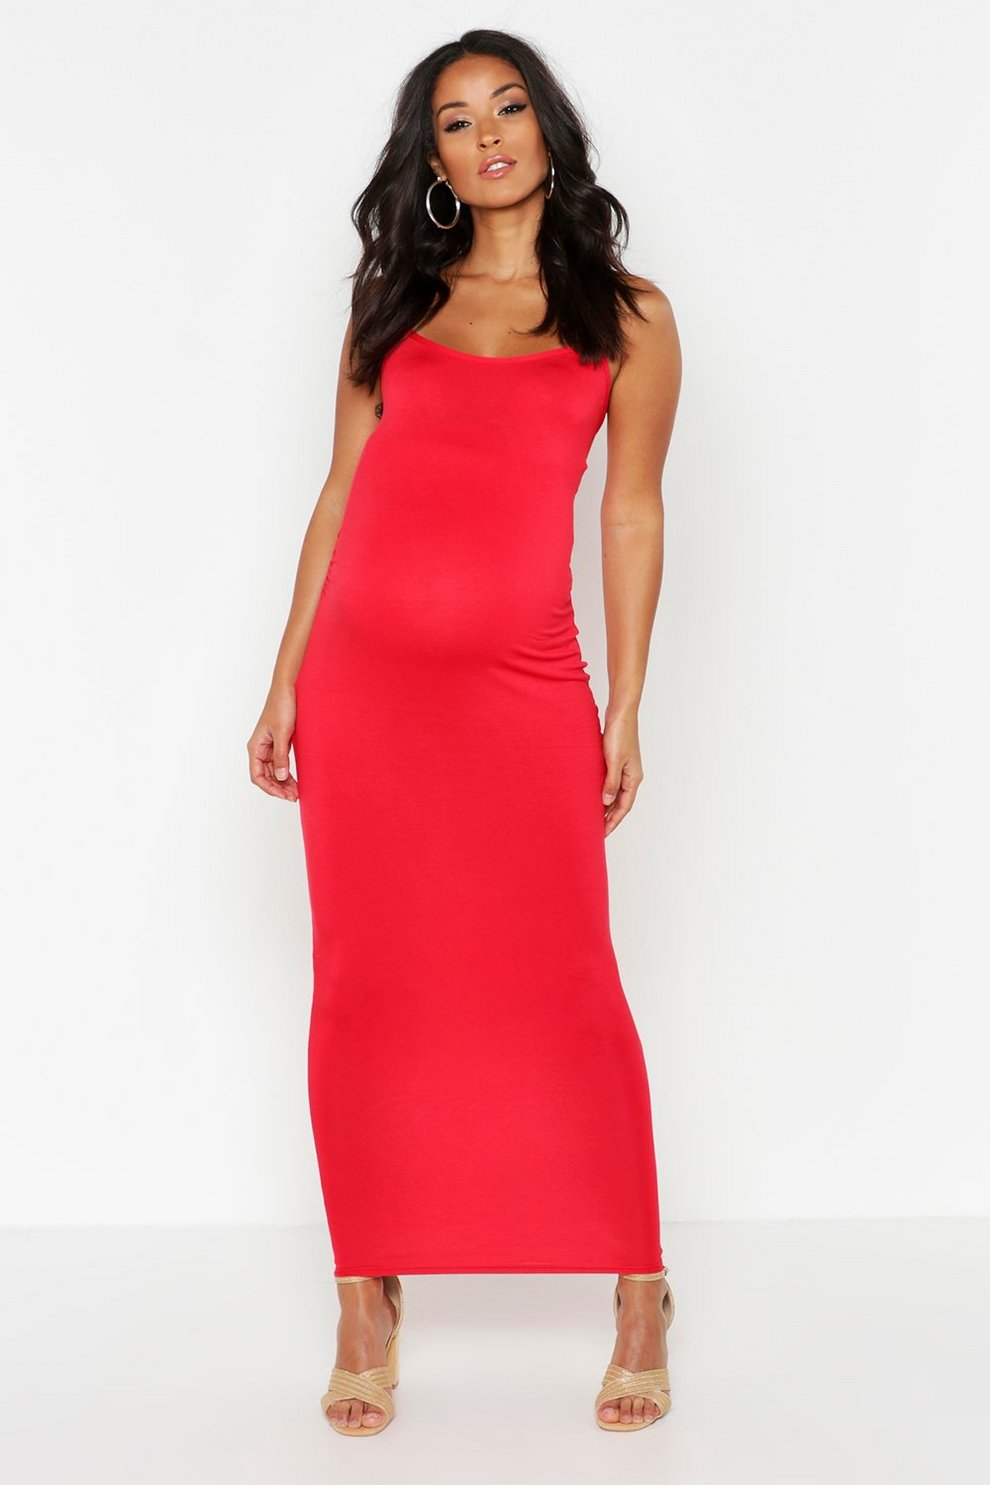 Sale Popular Boohoo Maternity Strappy Bodycon Maxi Dress Outlet Discount Authentic Cheap 2018 Newest Best Sale Cheap Price Buy Cheap Nicekicks 5DRiboXSZ